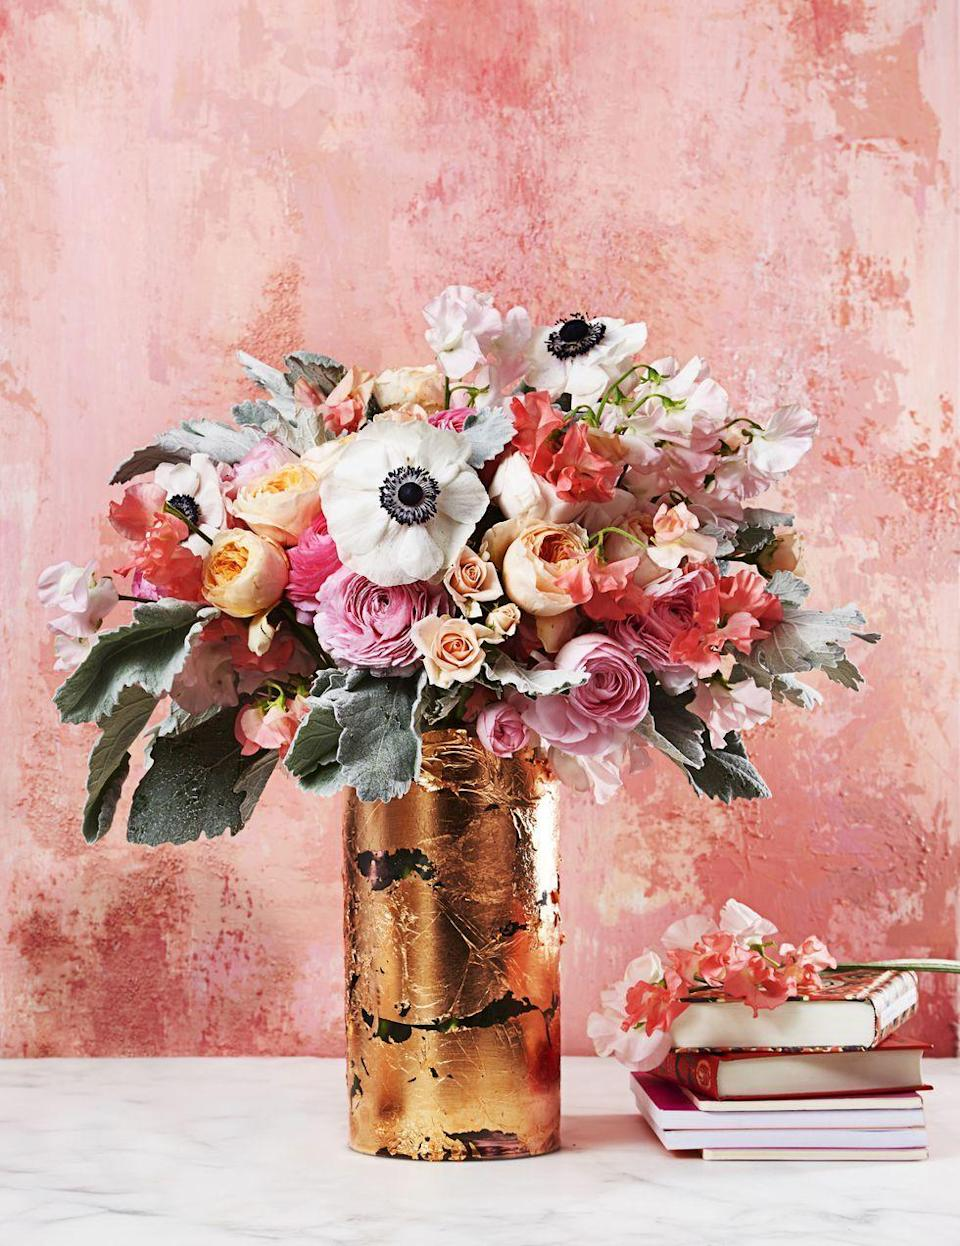 """<p>Bring the elegance to your Easter affair with this gilded decoration. In small sections, paint on an adhesive, then lay metallic sheets on glass and smooth. Fill with a pretty mix of peach garden roses, blush ranunculus, pink sweet peas, lamb's ears, and white anemones. </p><p><a class=""""link rapid-noclick-resp"""" href=""""https://www.amazon.com/Bememo-Imitation-Gilding-Crafting-Decoration/dp/B0722X91YR/?tag=syn-yahoo-20&ascsubtag=%5Bartid%7C10055.g.1906%5Bsrc%7Cyahoo-us"""" rel=""""nofollow noopener"""" target=""""_blank"""" data-ylk=""""slk:SHOP GOLD LEAF"""">SHOP GOLD LEAF</a></p>"""